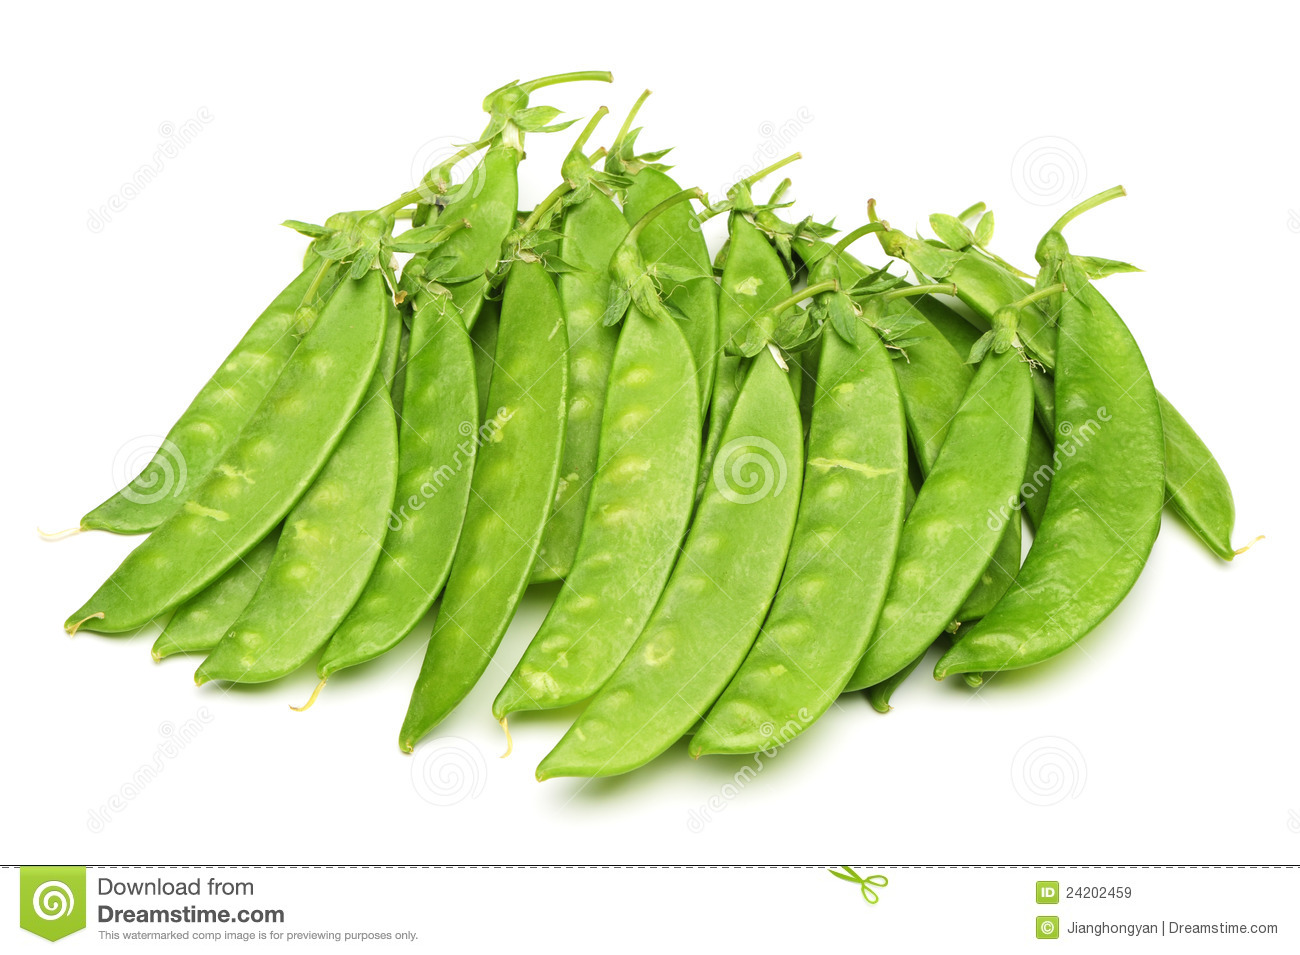 Snow Peas Royalty Free Stock Images - Image: 24202459